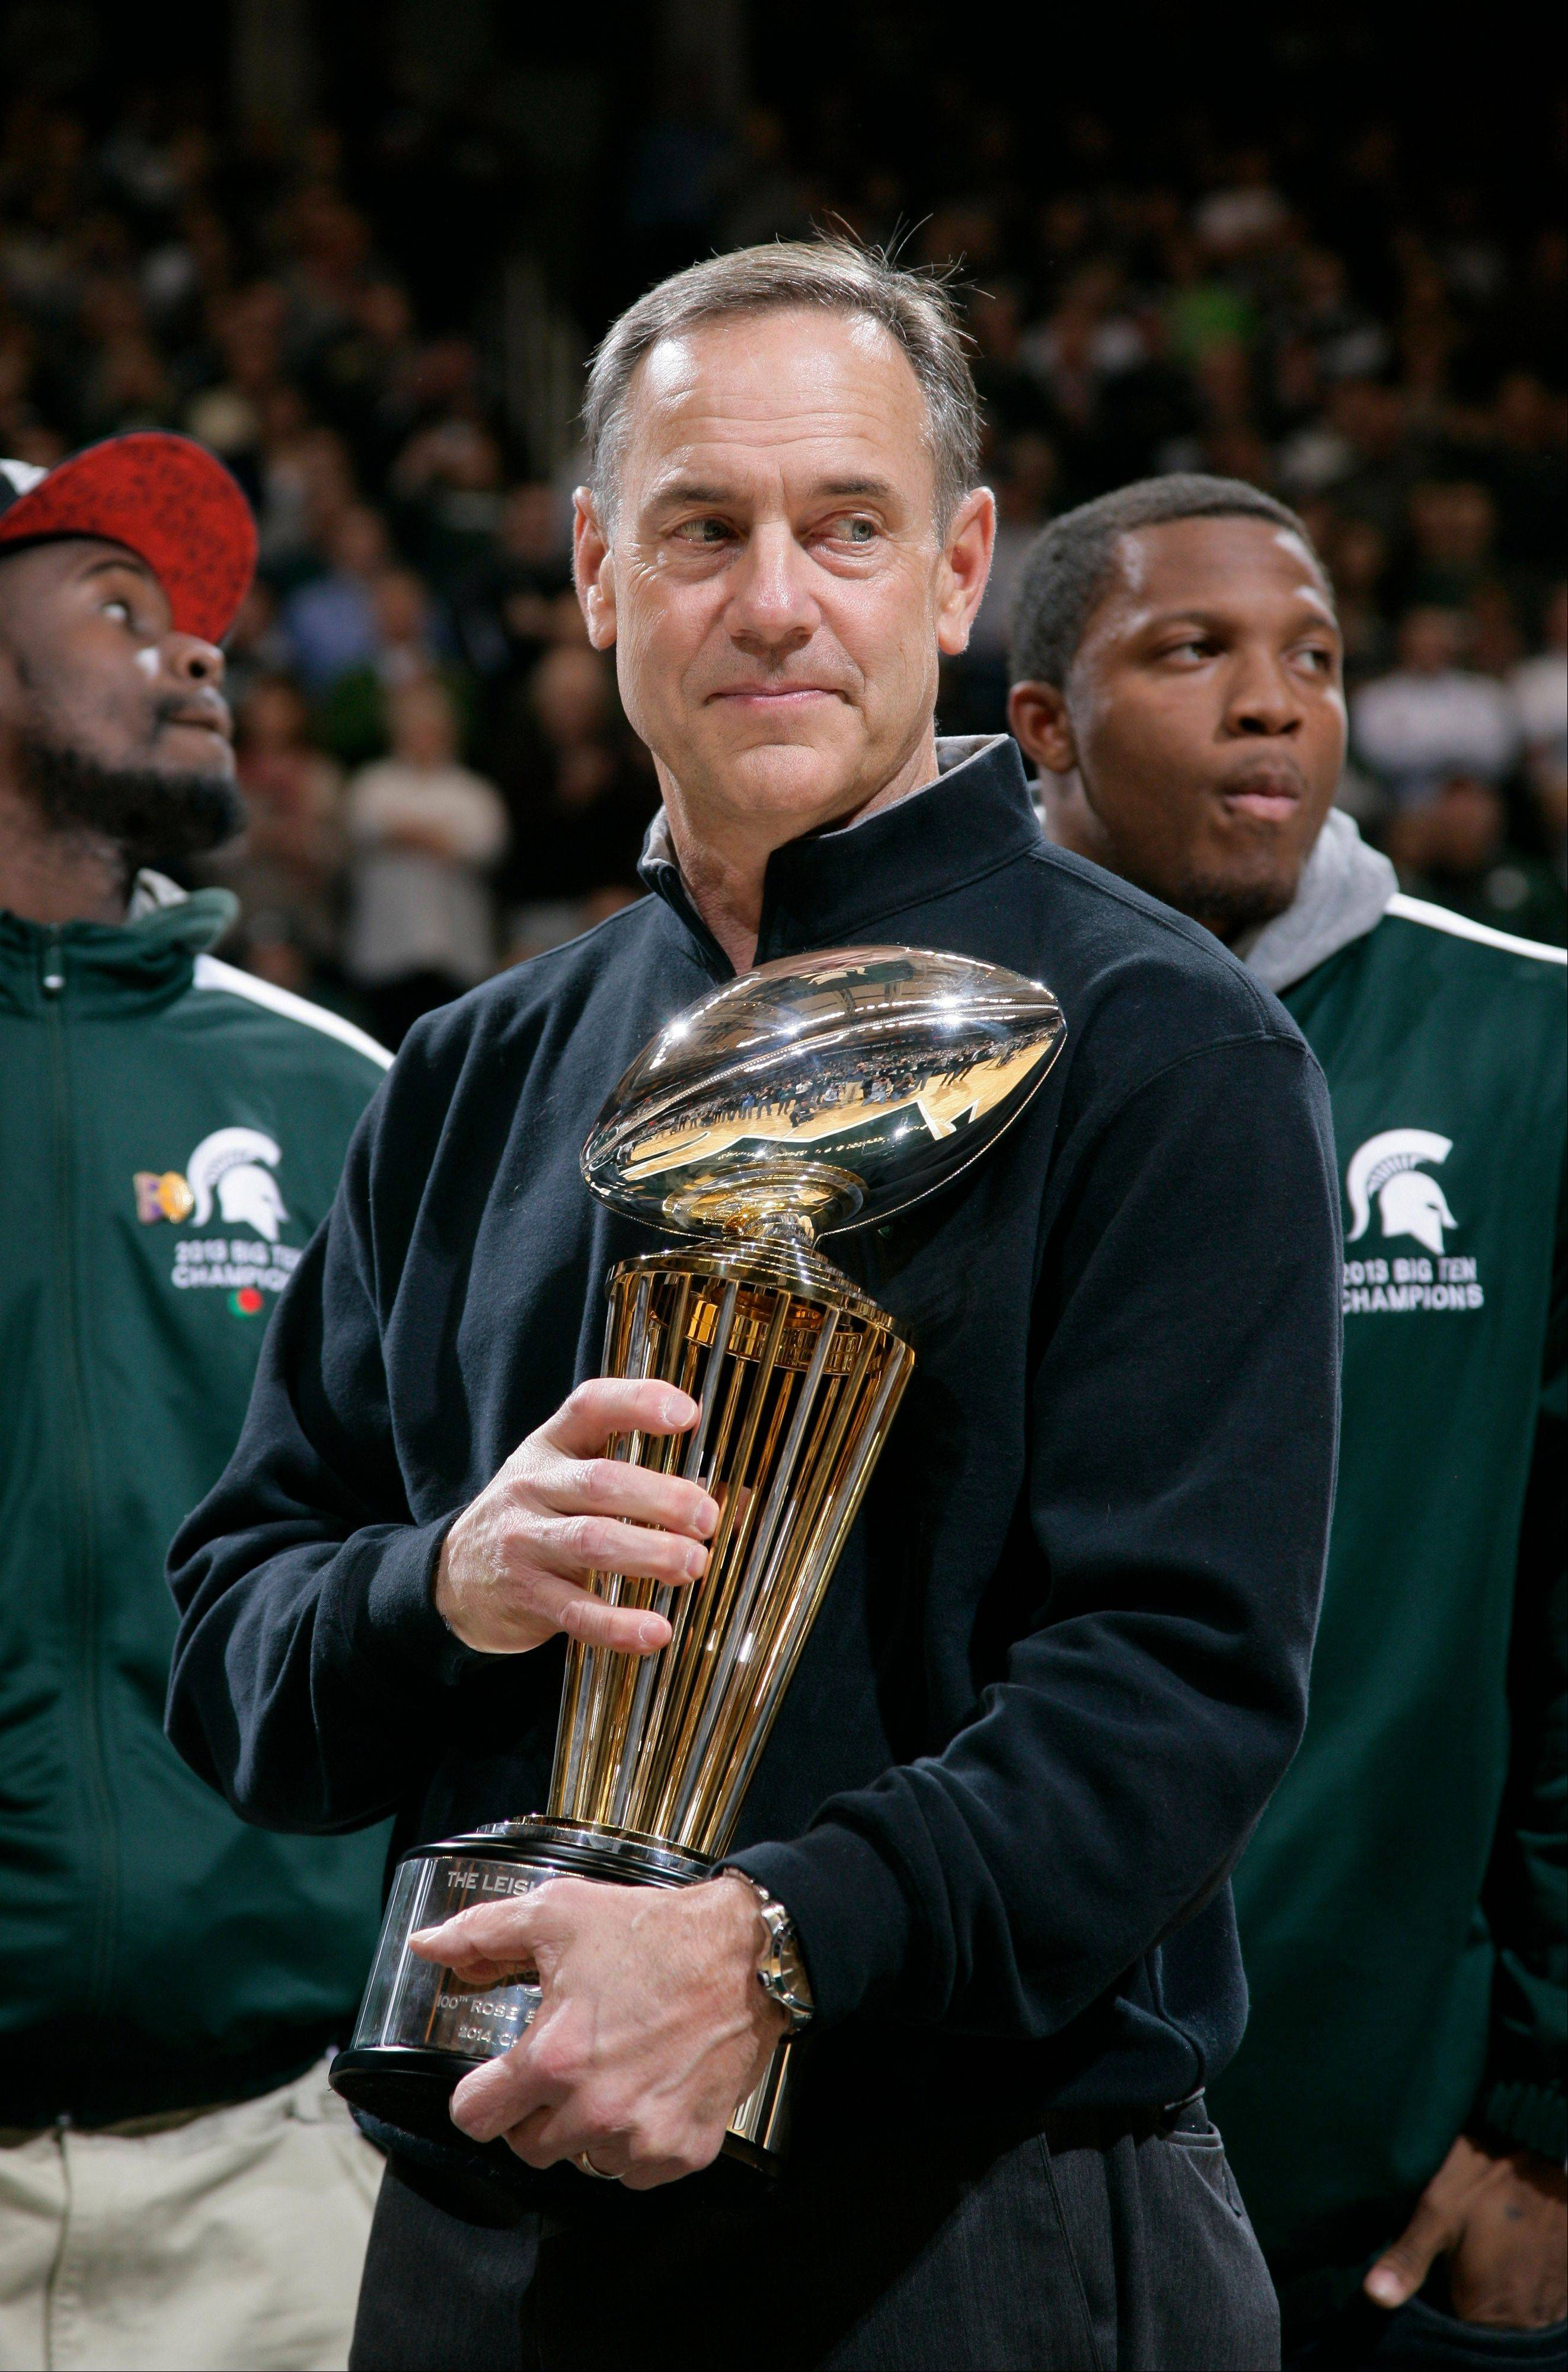 Michigan State football coach Mark Dantonio holds the 100th Rose Bowl championship trophy at a basketball game between Michigan State and Ohio State on Tuesday in East Lansing, Mich.